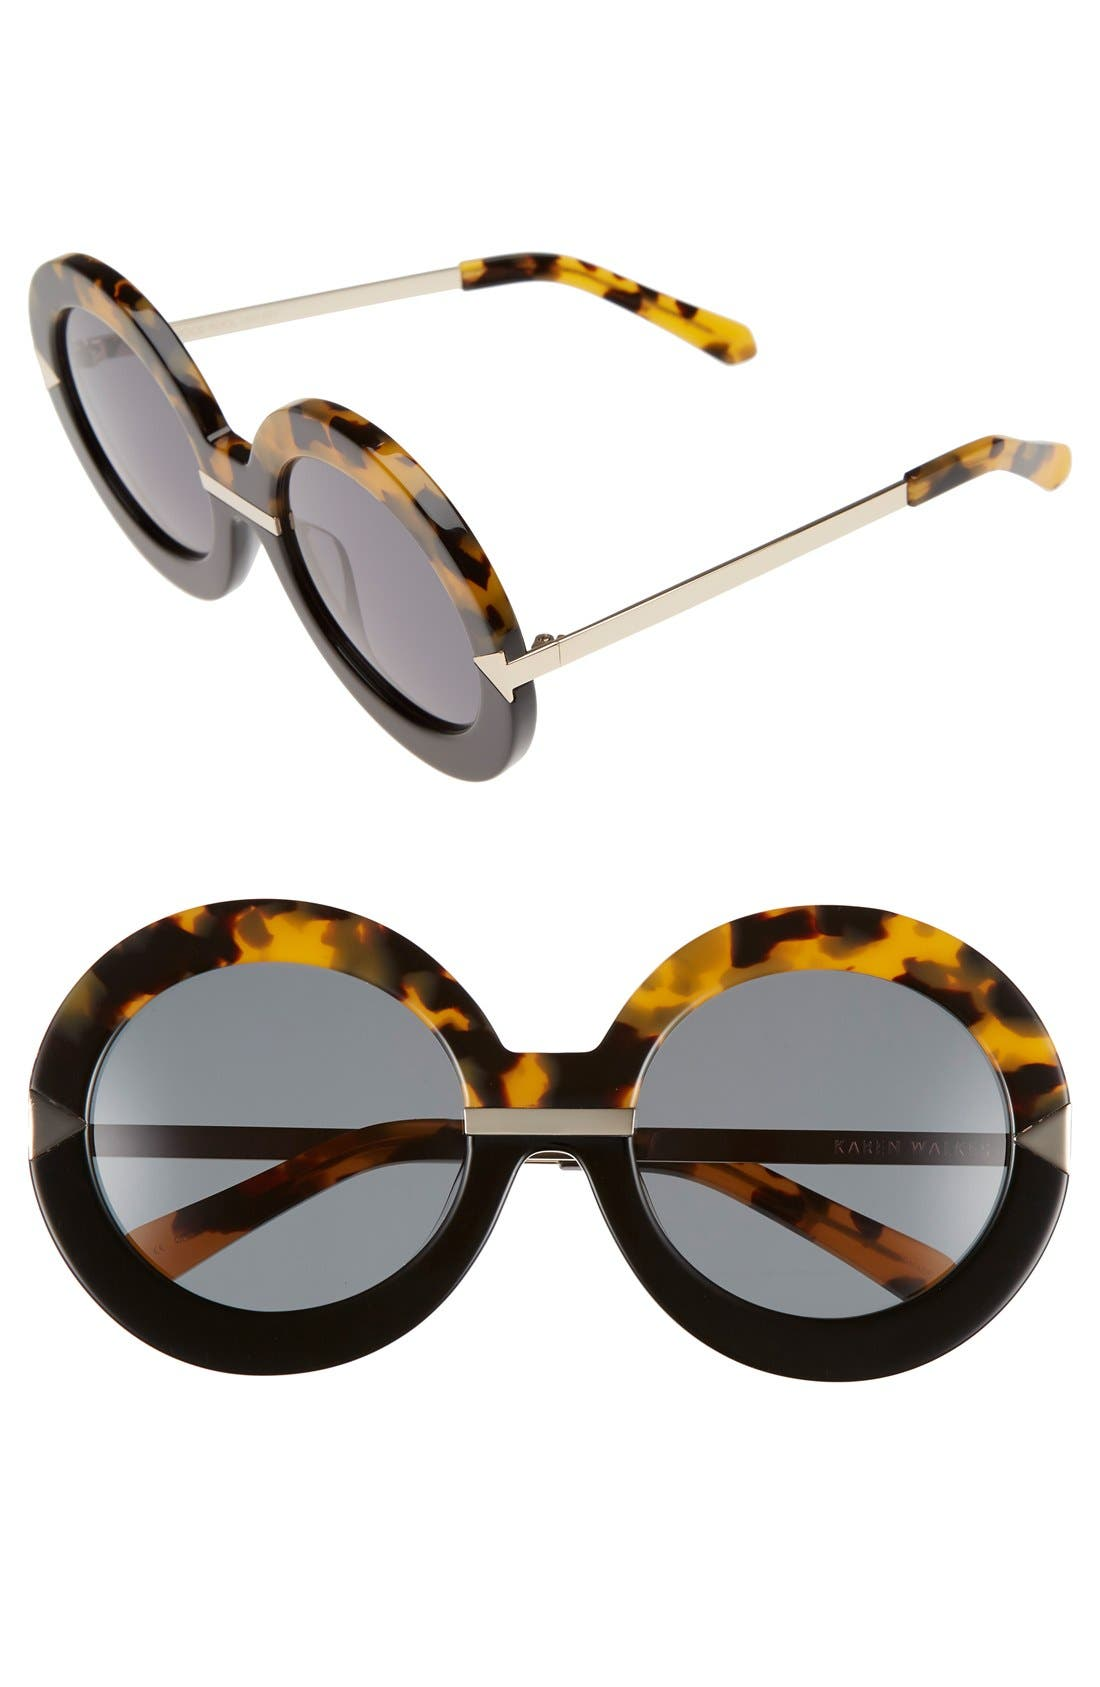 KAREN WALKER Hollywood Pool - Arrowed by Karen 53mm Sunglasses